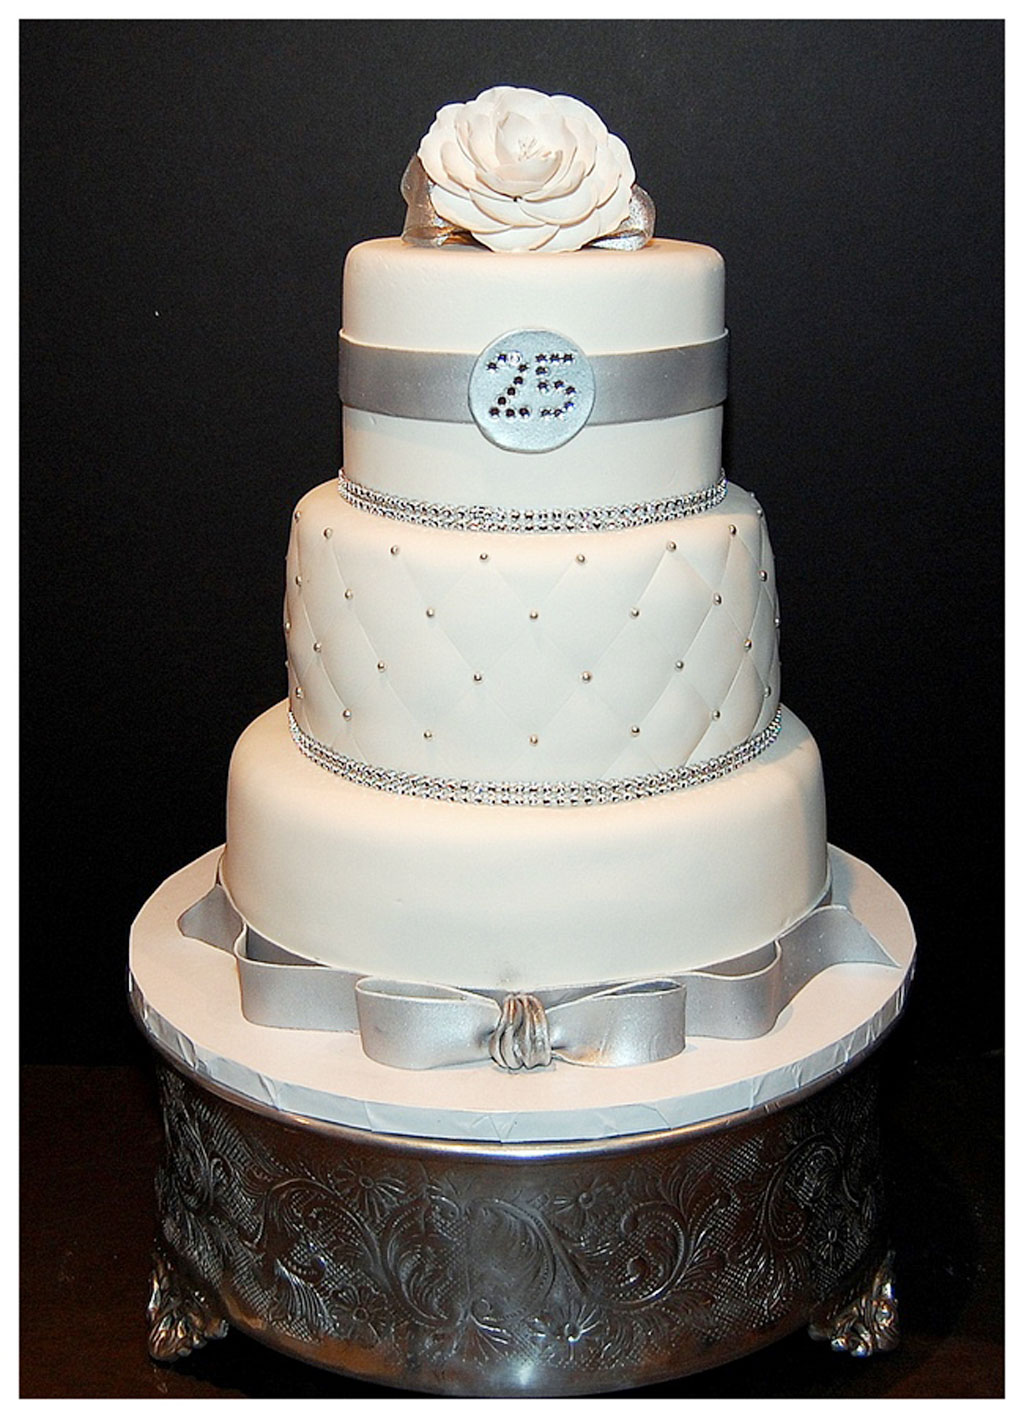 25th wedding anniversary cake images wedding cake cake for Anniversary cake decoration